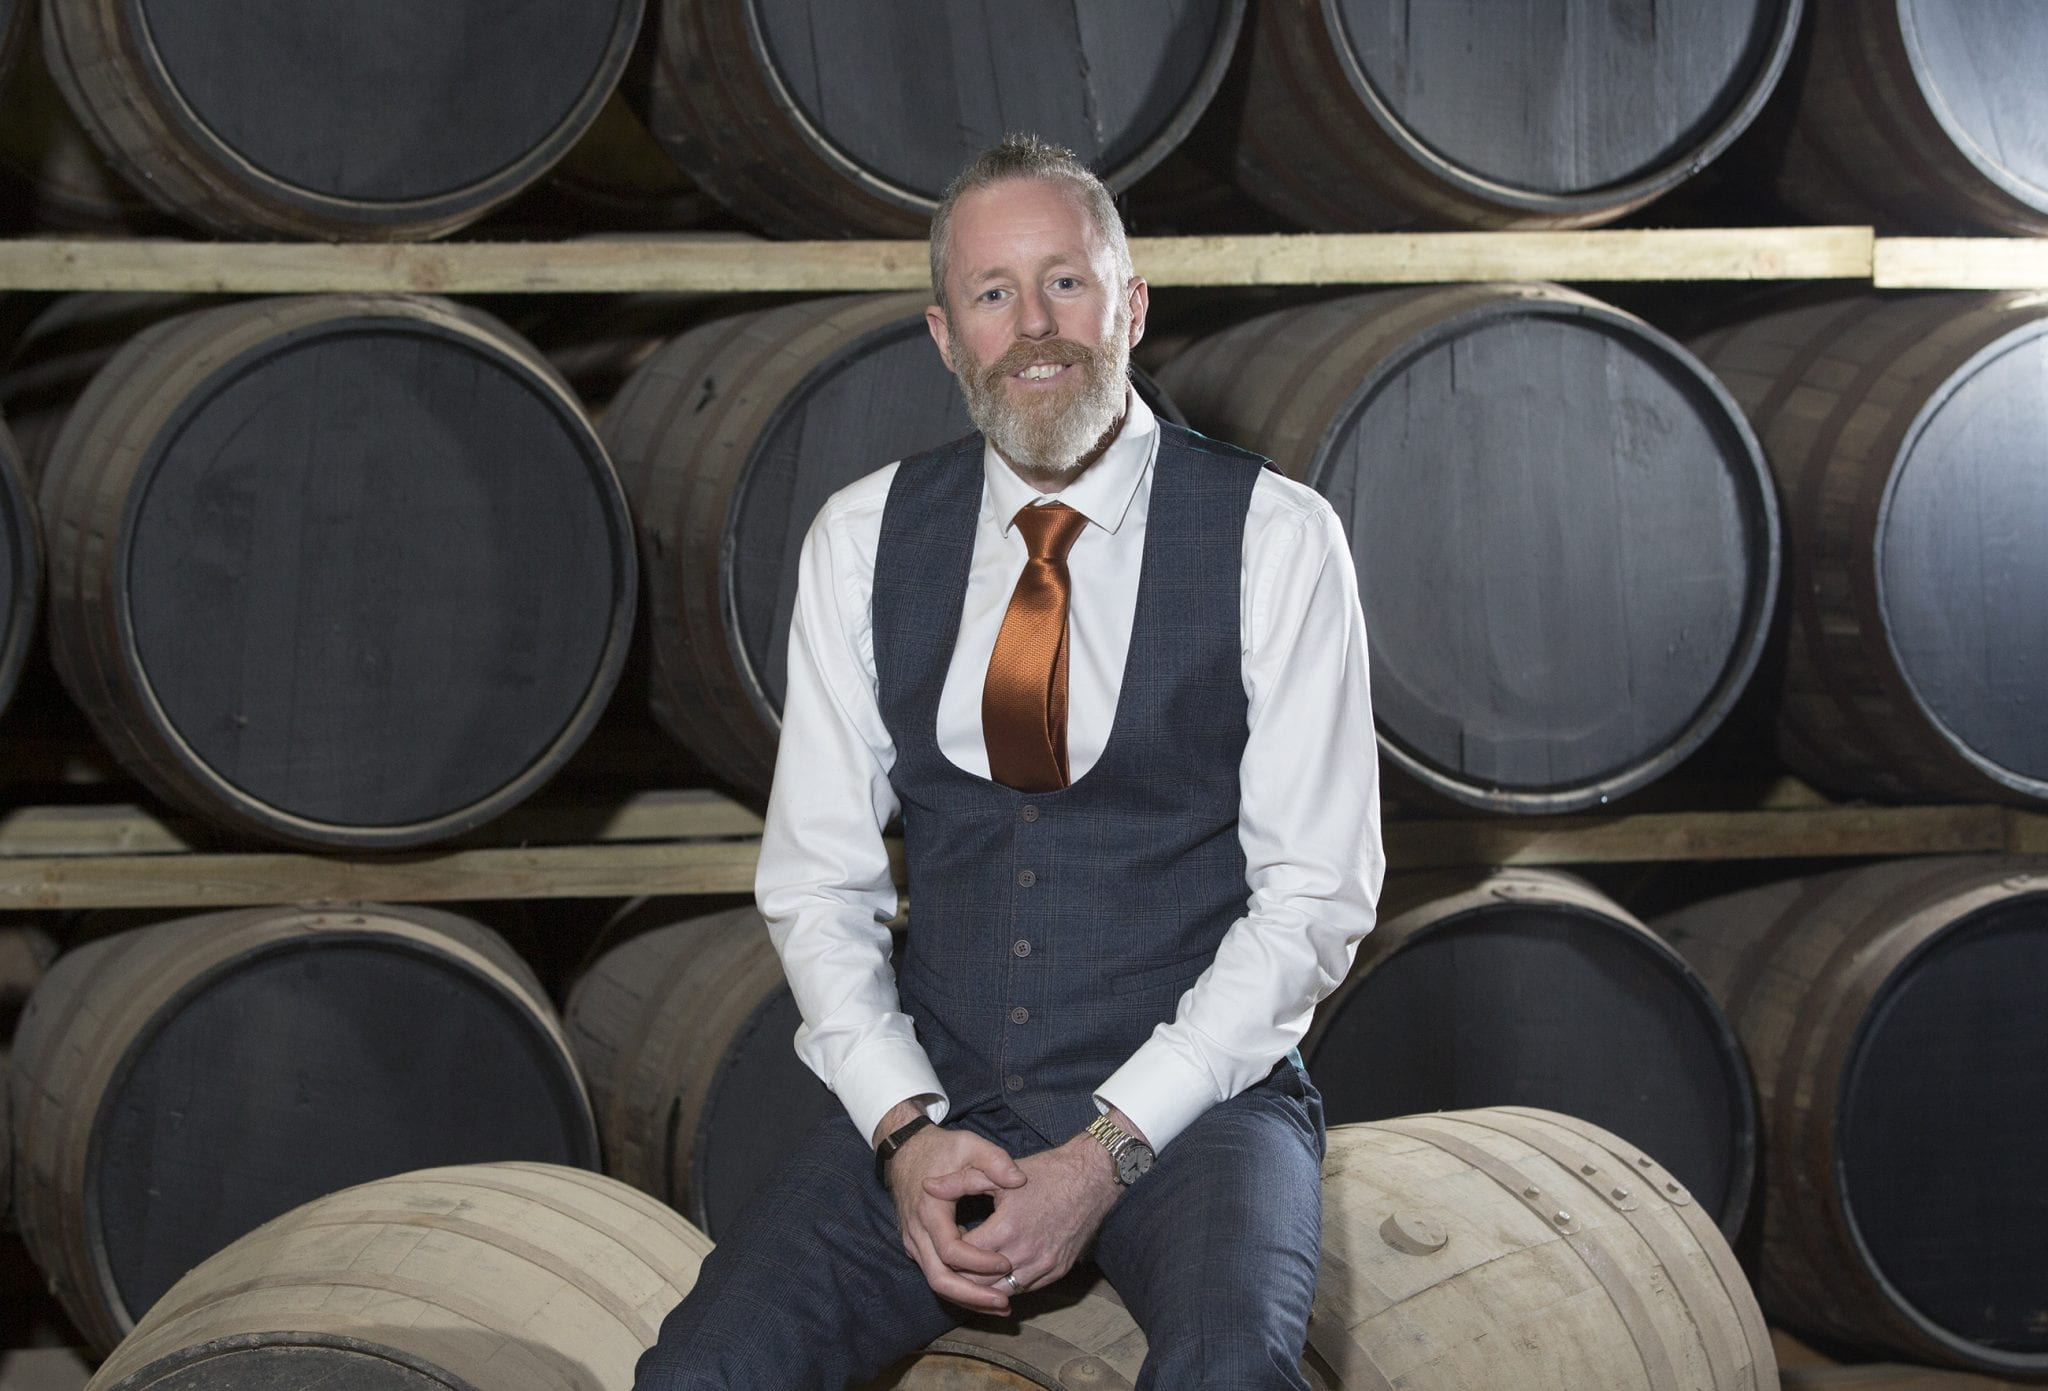 World Whisky Awards Jarlath Watson Echlinville Distillery Irish Whiskey Blog Stuart McNamara